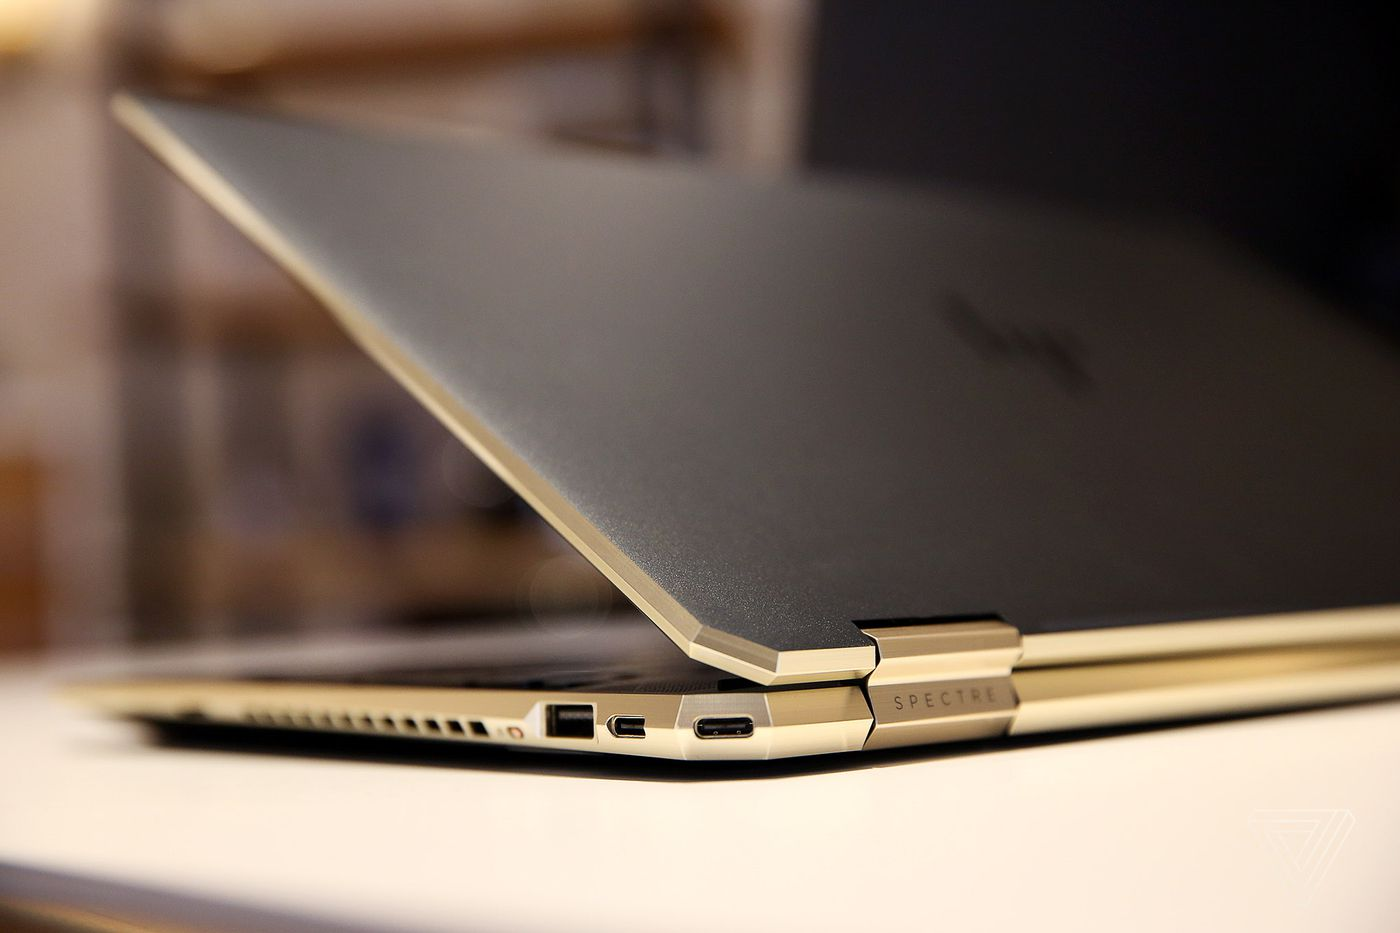 HP's Spectre x360 15 gets upgraded with smaller bezels and a good trackpad  - The Verge